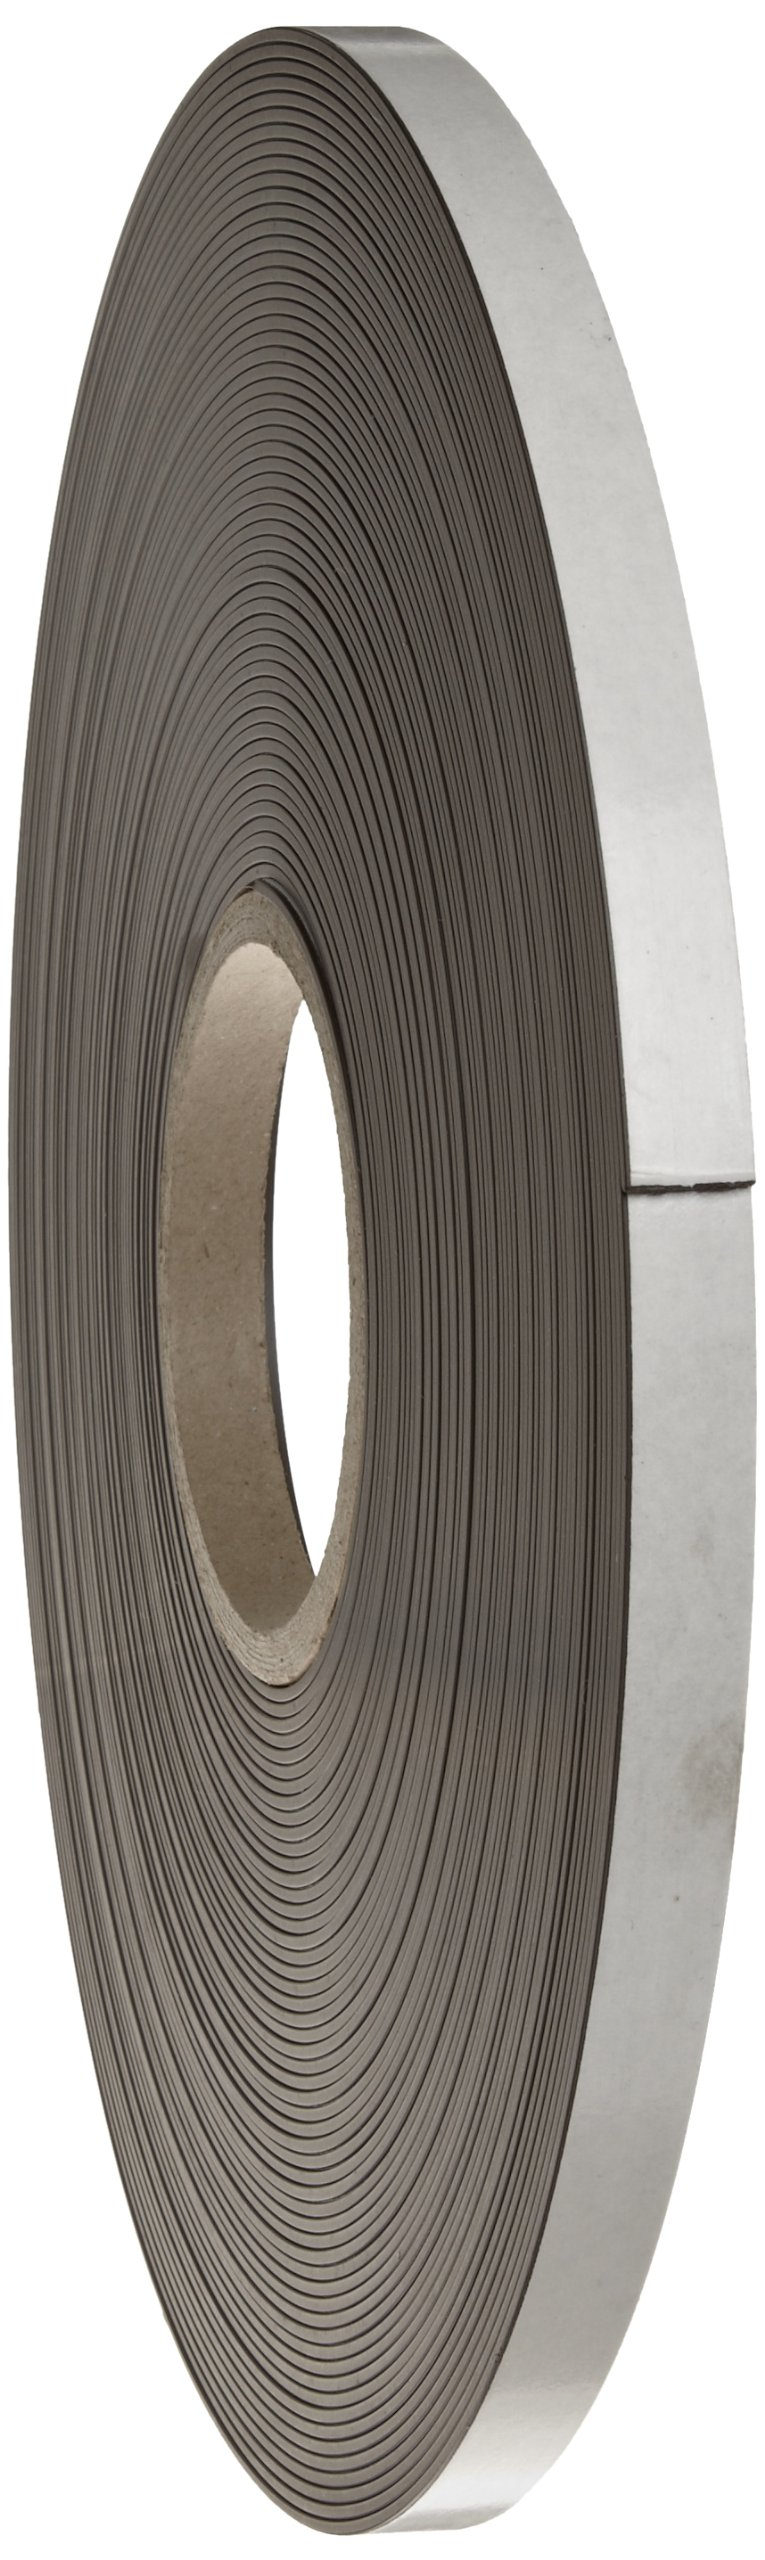 Flexible Magnetic Tape - 1/16'' Thick x 1/2'' Wide x 100 feet (1 roll)